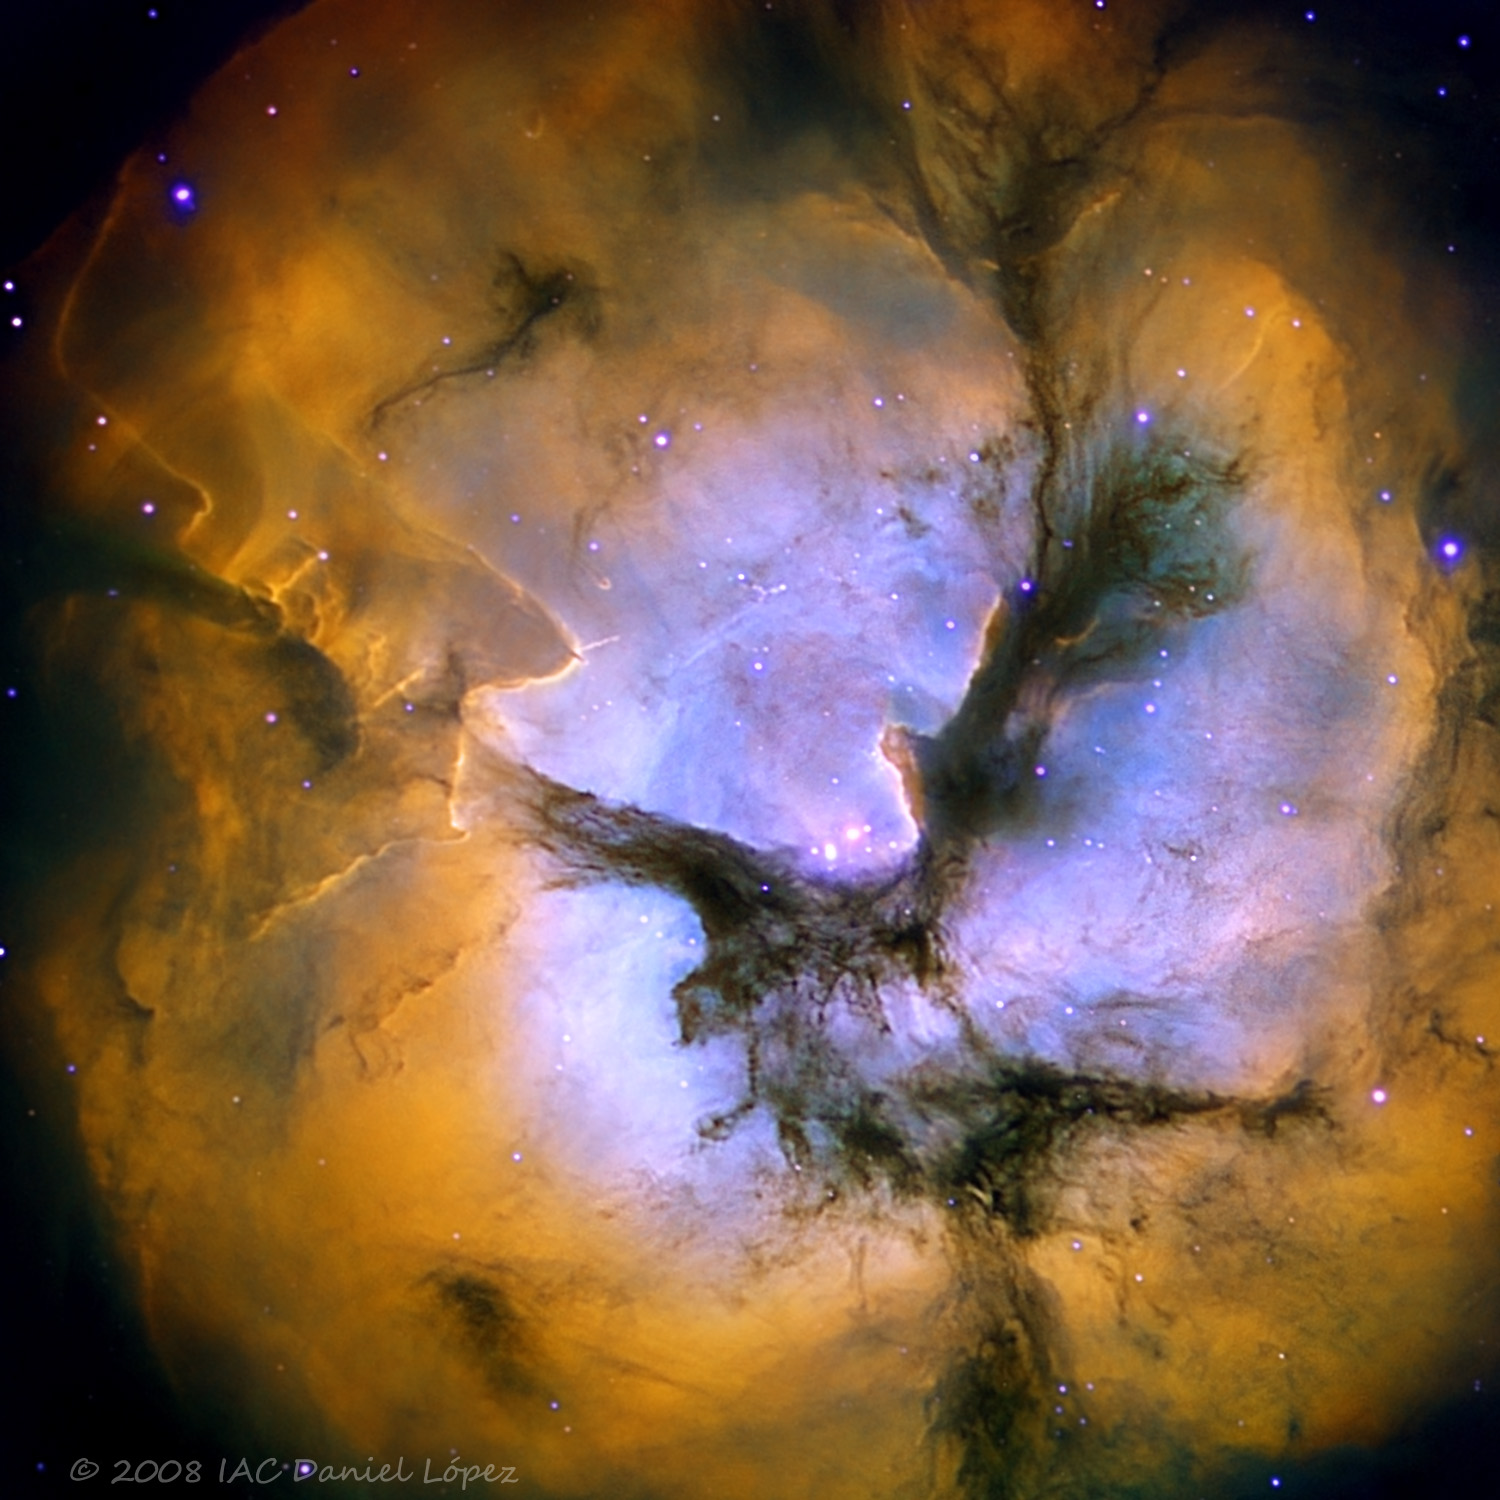 dark space images hubble - photo #27